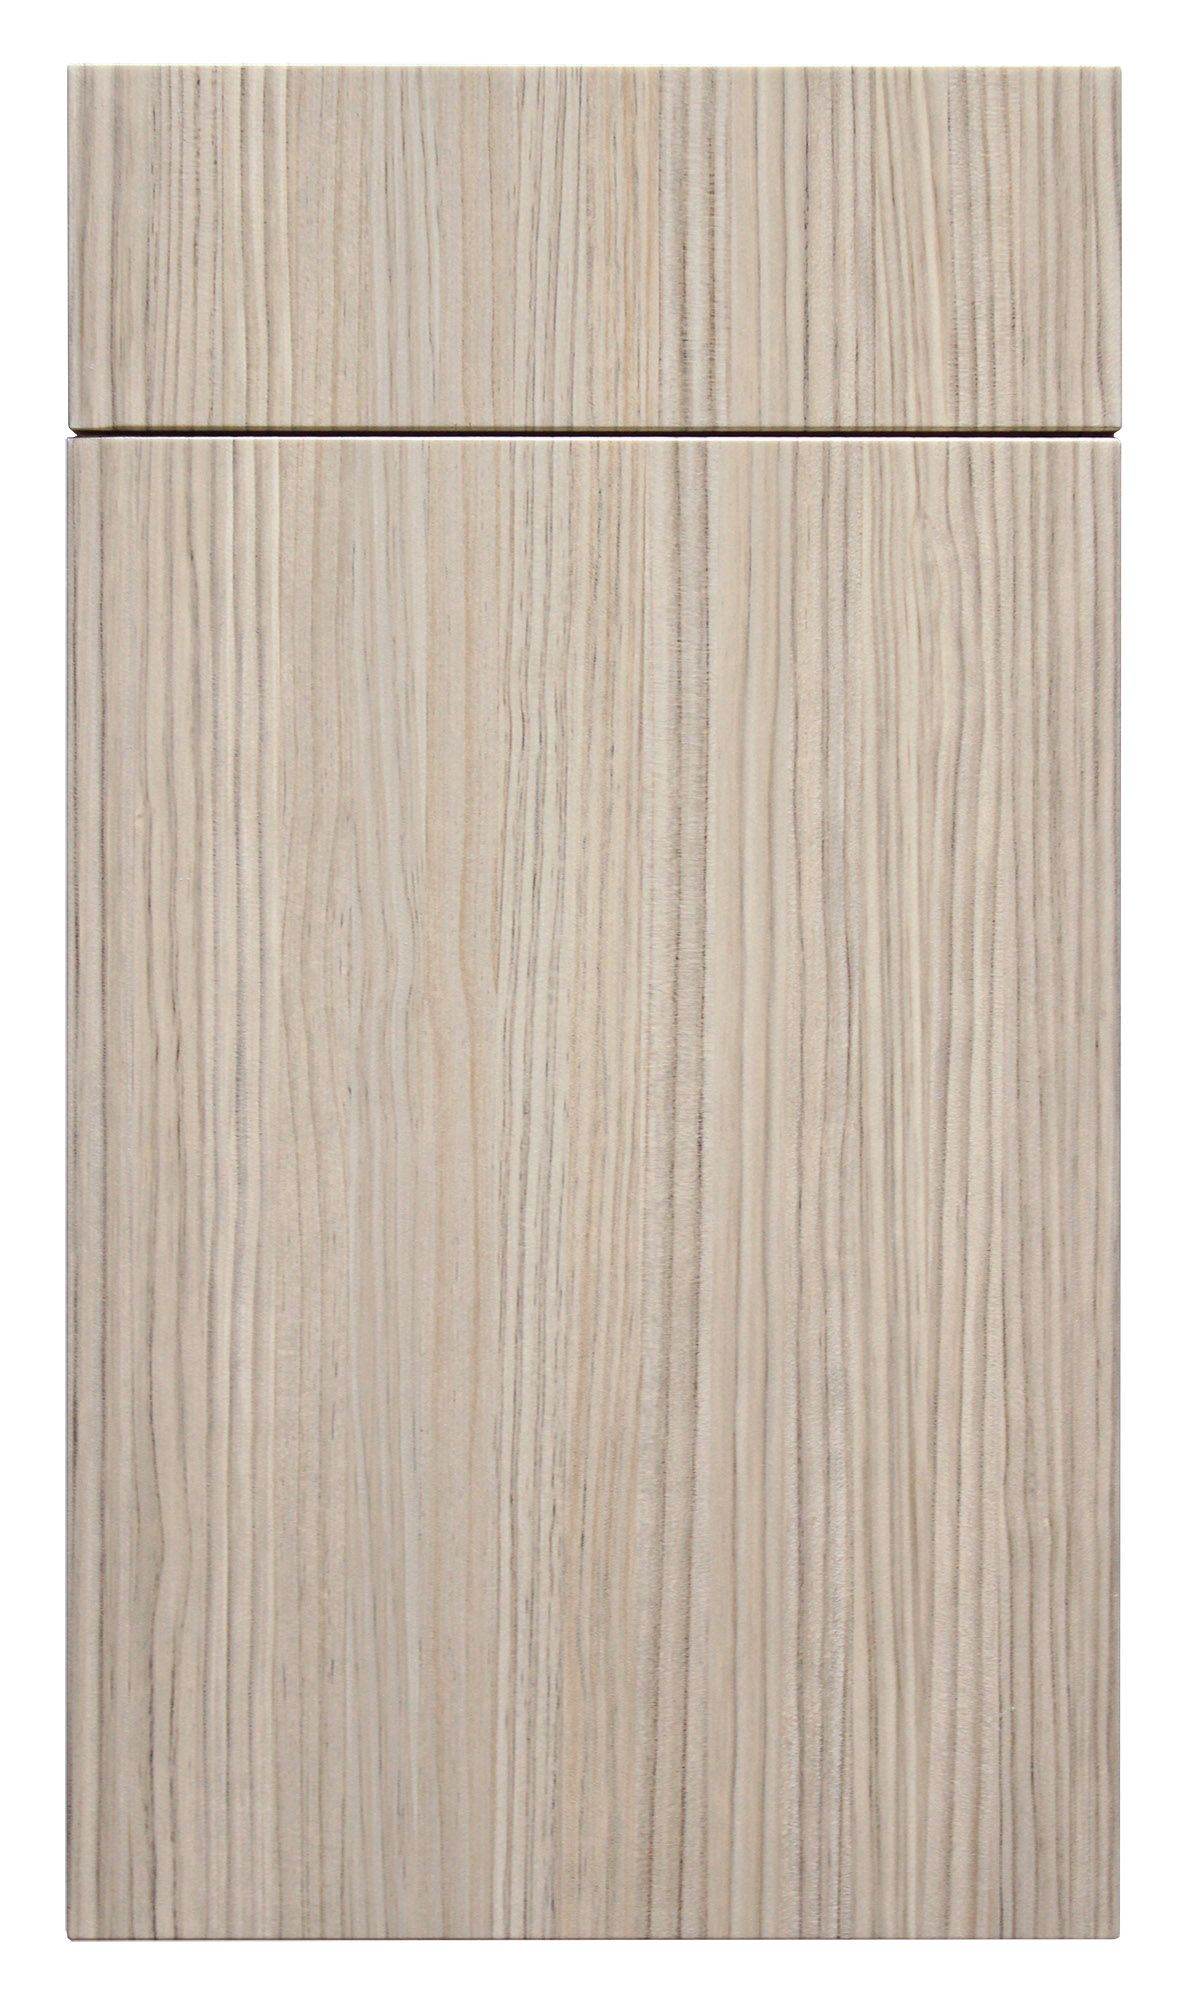 Portuna Carnaval 2d A Sg1003 Kitchen Cabinets South El Monte Kitchen Cabinets Los Angeles Cabinets San Diego Wholesale Cabinets Online German Design Wholesale Cabinets Metal Design